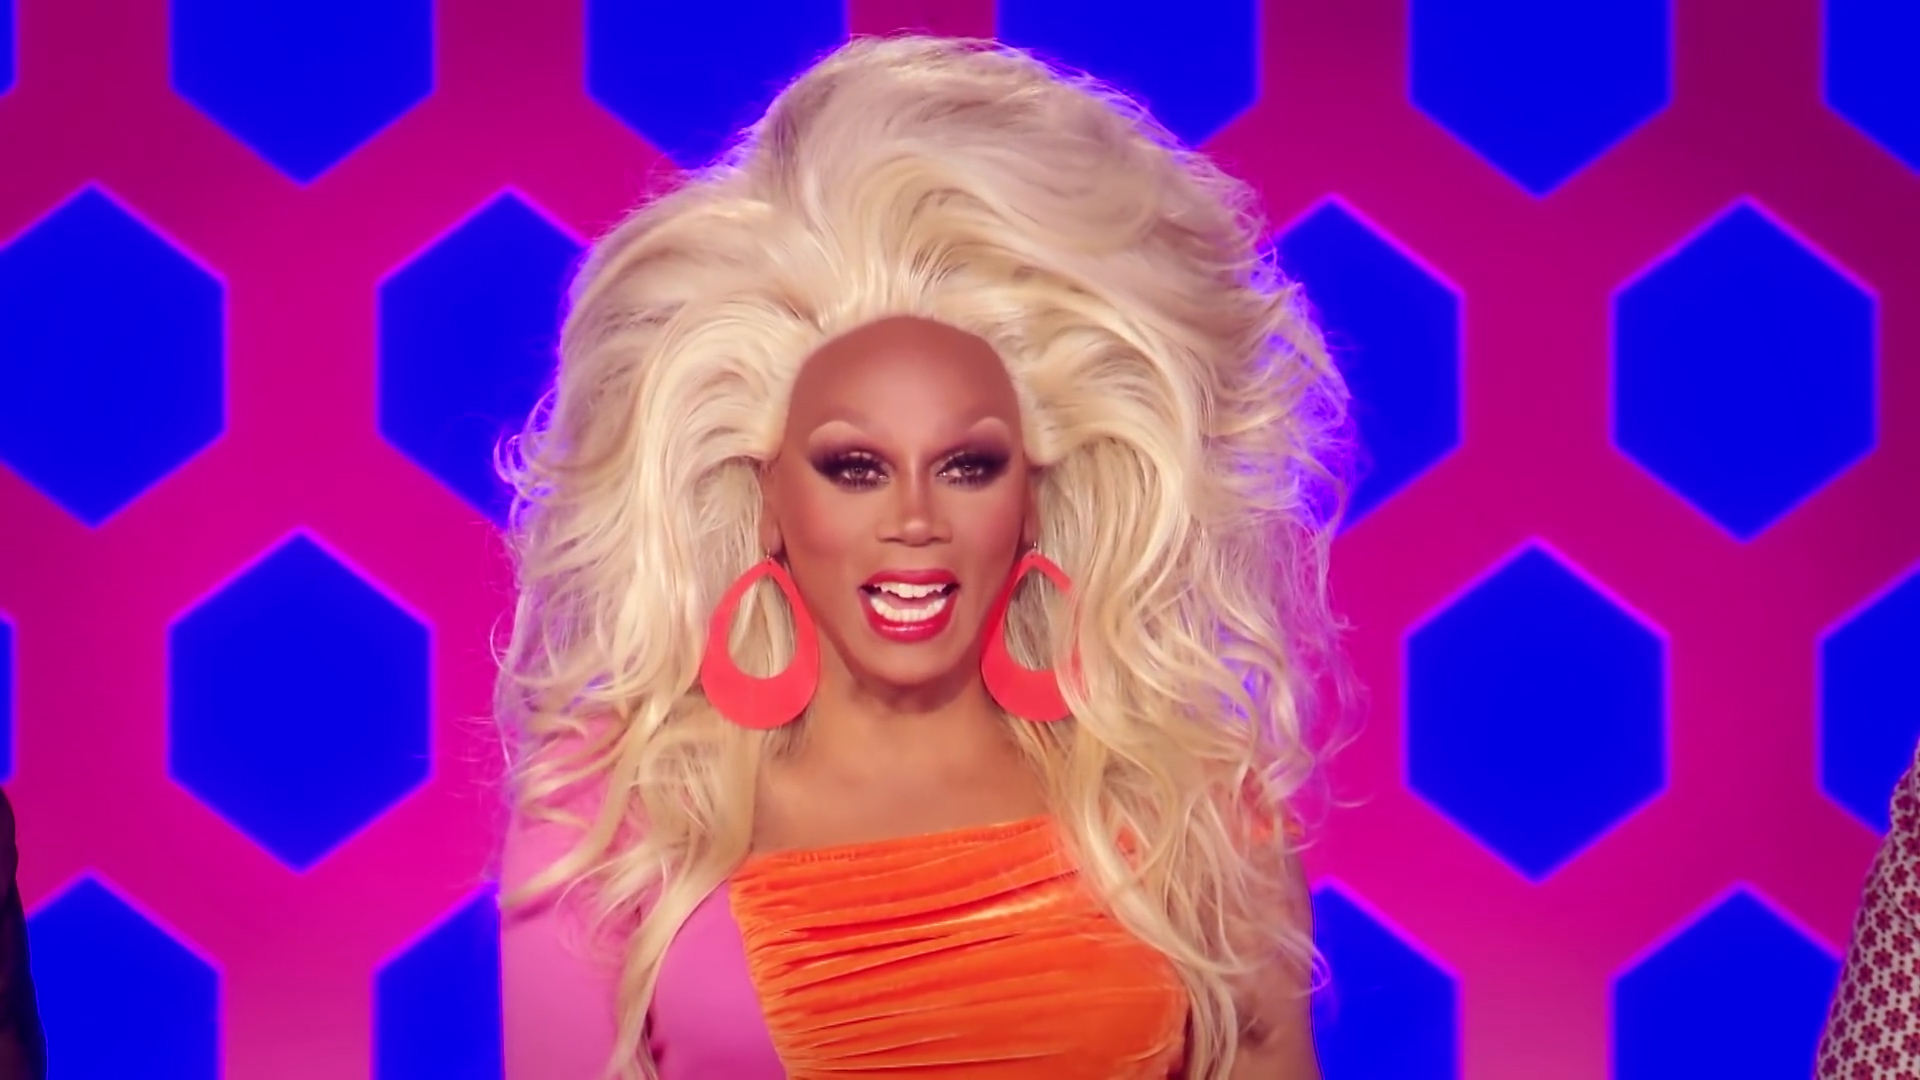 Rupaul's Drag Race: All-Stars 4 premieres on Stan December 15